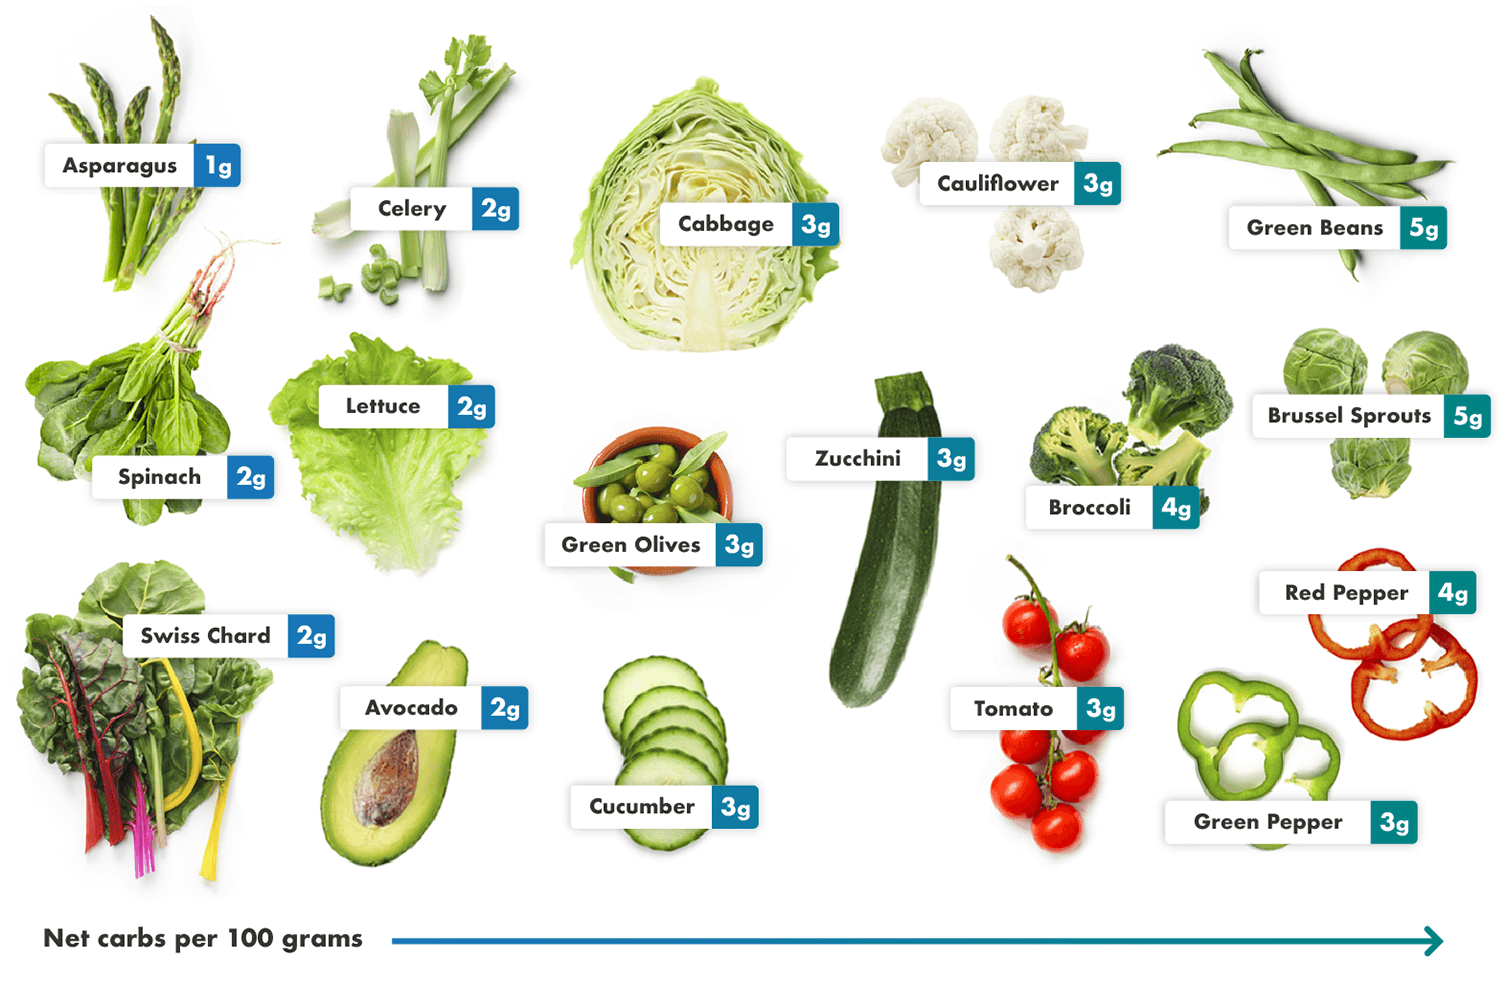 Layout of photos of the best keto vegetables with their net carb count overlaid. They are arranged in order of the least to most net carbs per 100 grams serving, starting with the vegetables with the least amount of carbs on the left.